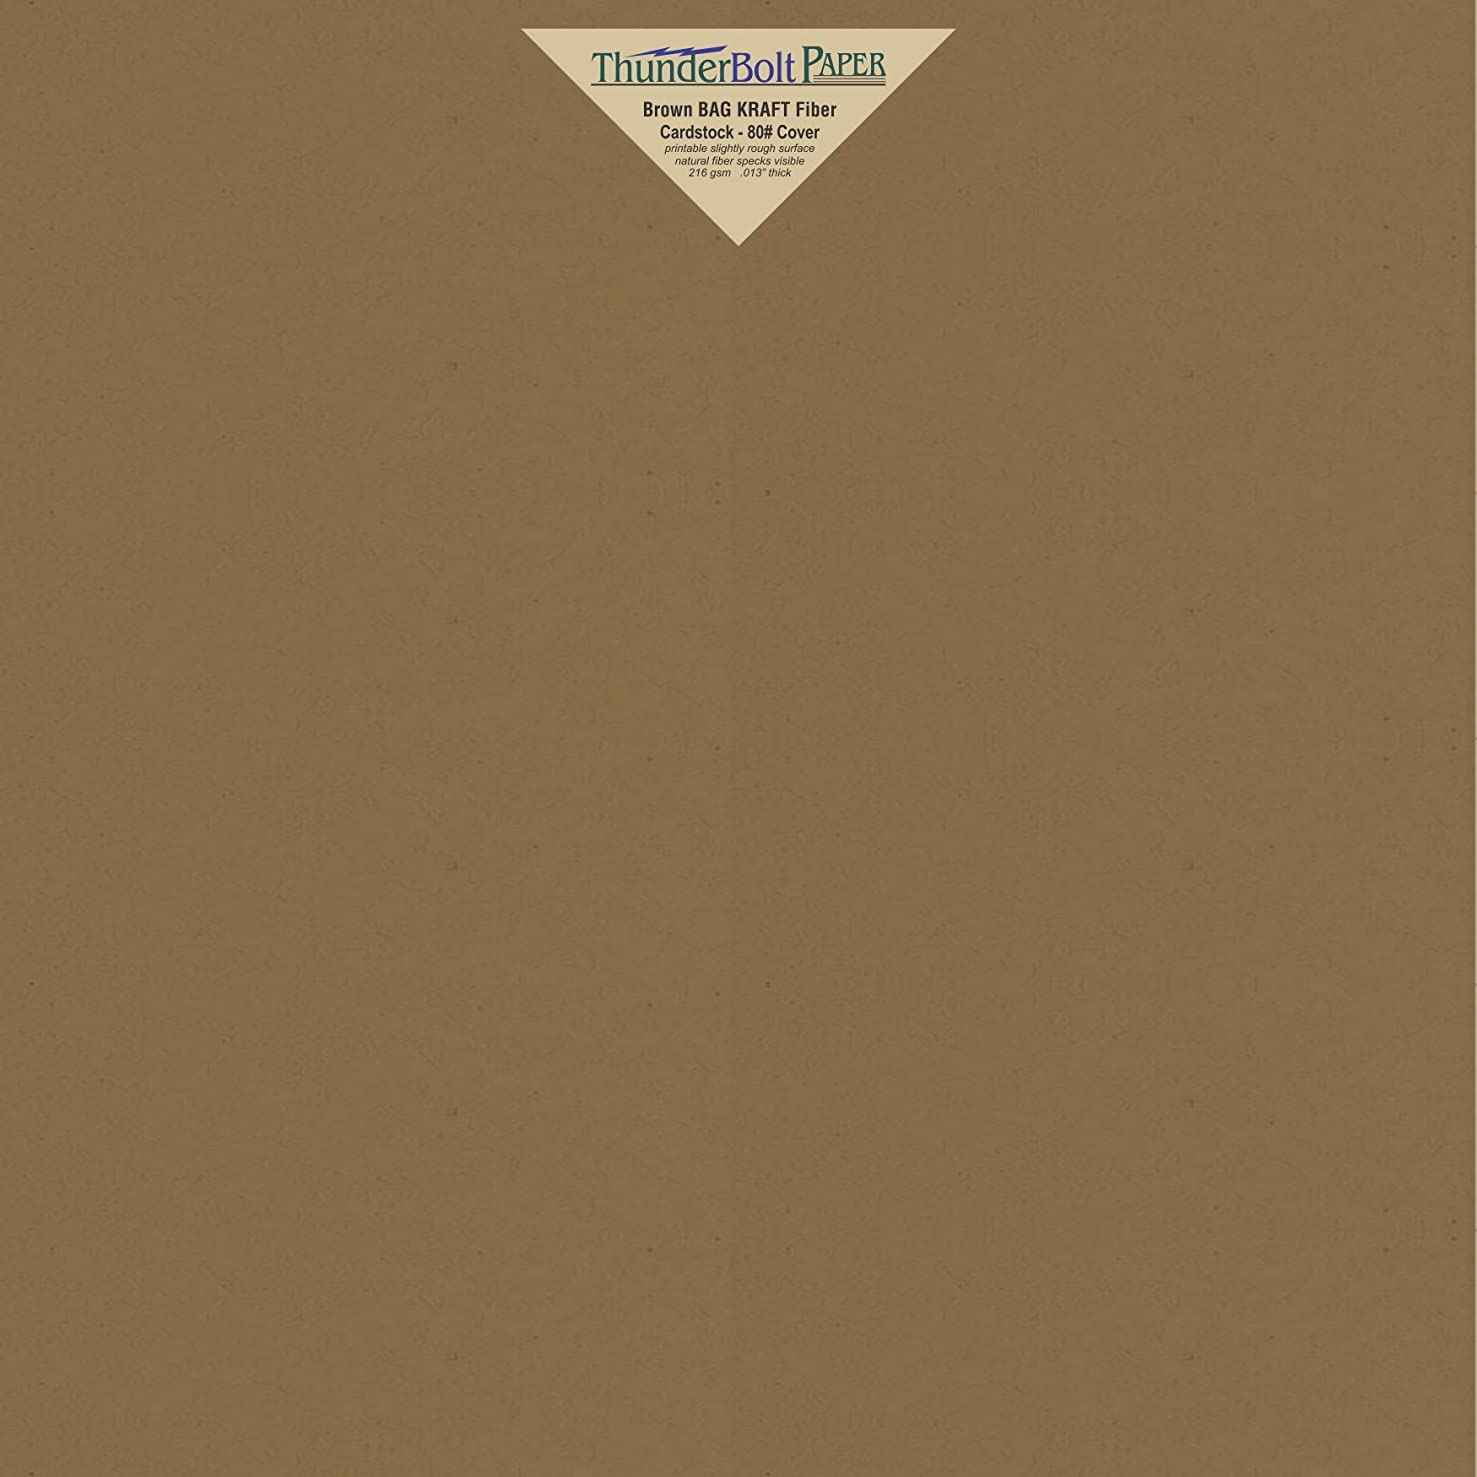 25 Brown Bag Colored Cardstock Paper Sheets - 12 X 12 inches Scrapbook Album|Cover Size – 80 lb/Pound Cover|Card Weight 216 GSM - Natural Kraft Fiber with Darker Specks - Slightly Rough Finish